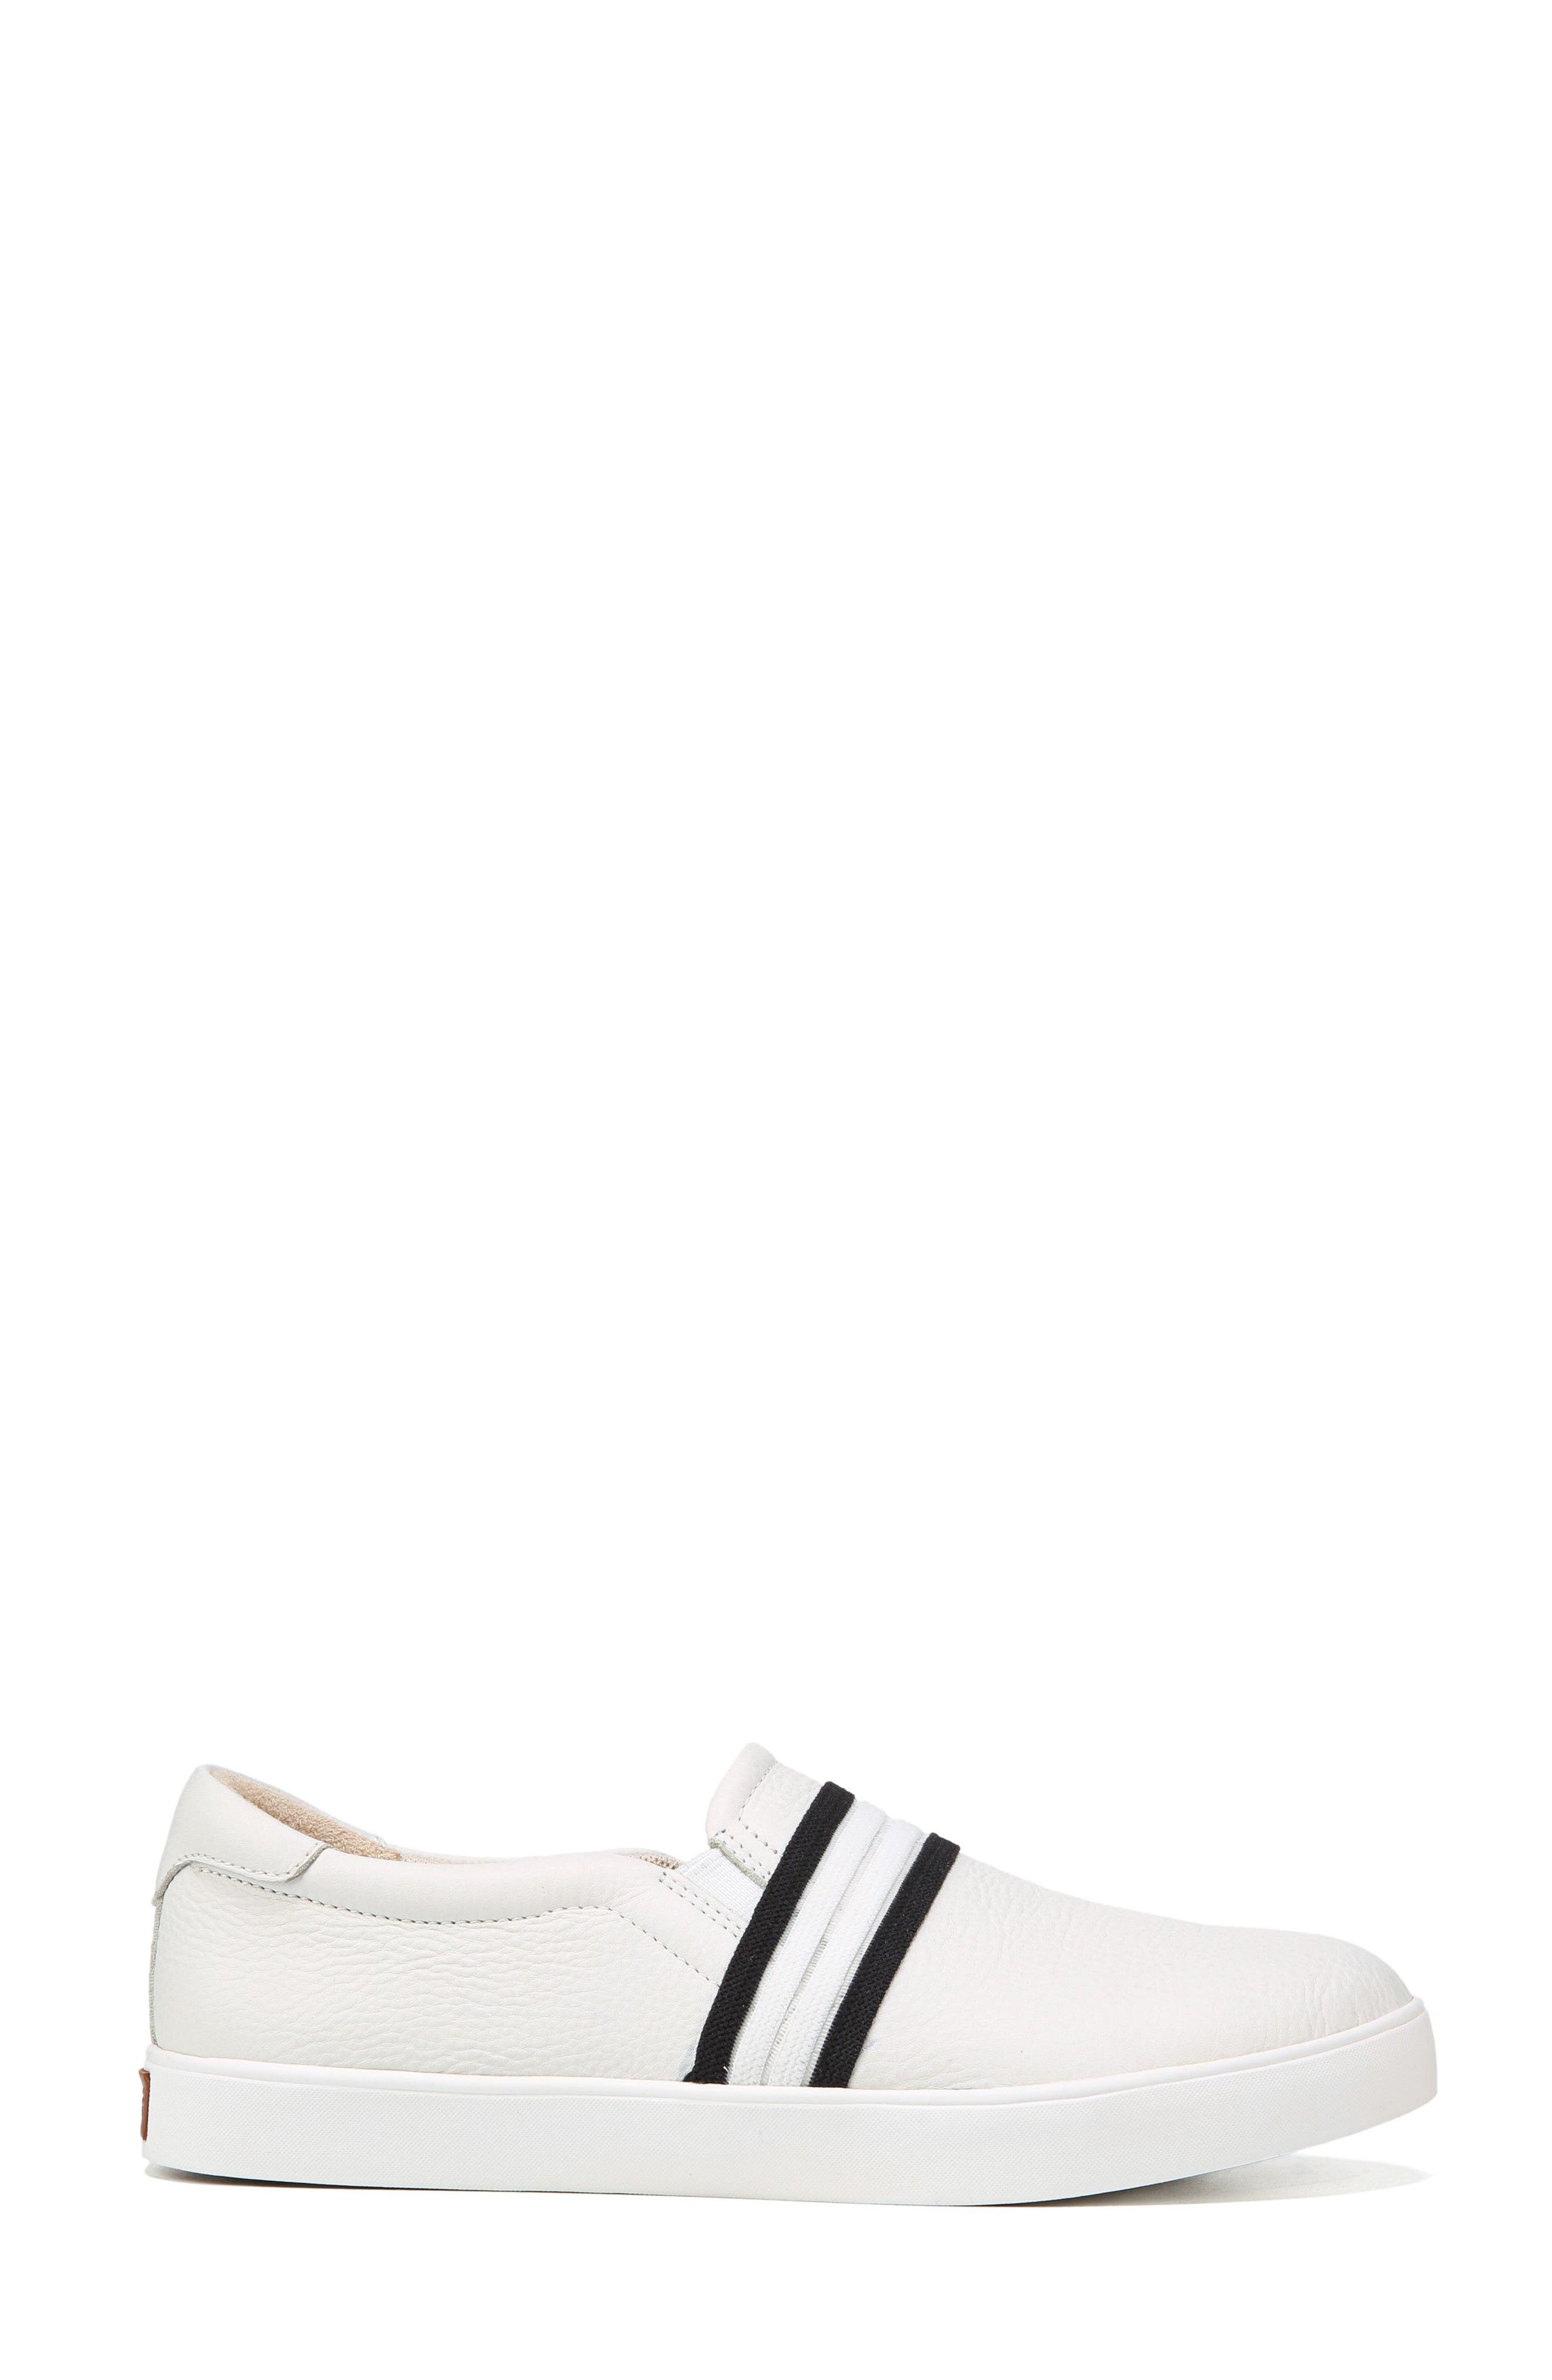 Scout Slip-On Sneaker,                             Alternate thumbnail 3, color,                             White Leather